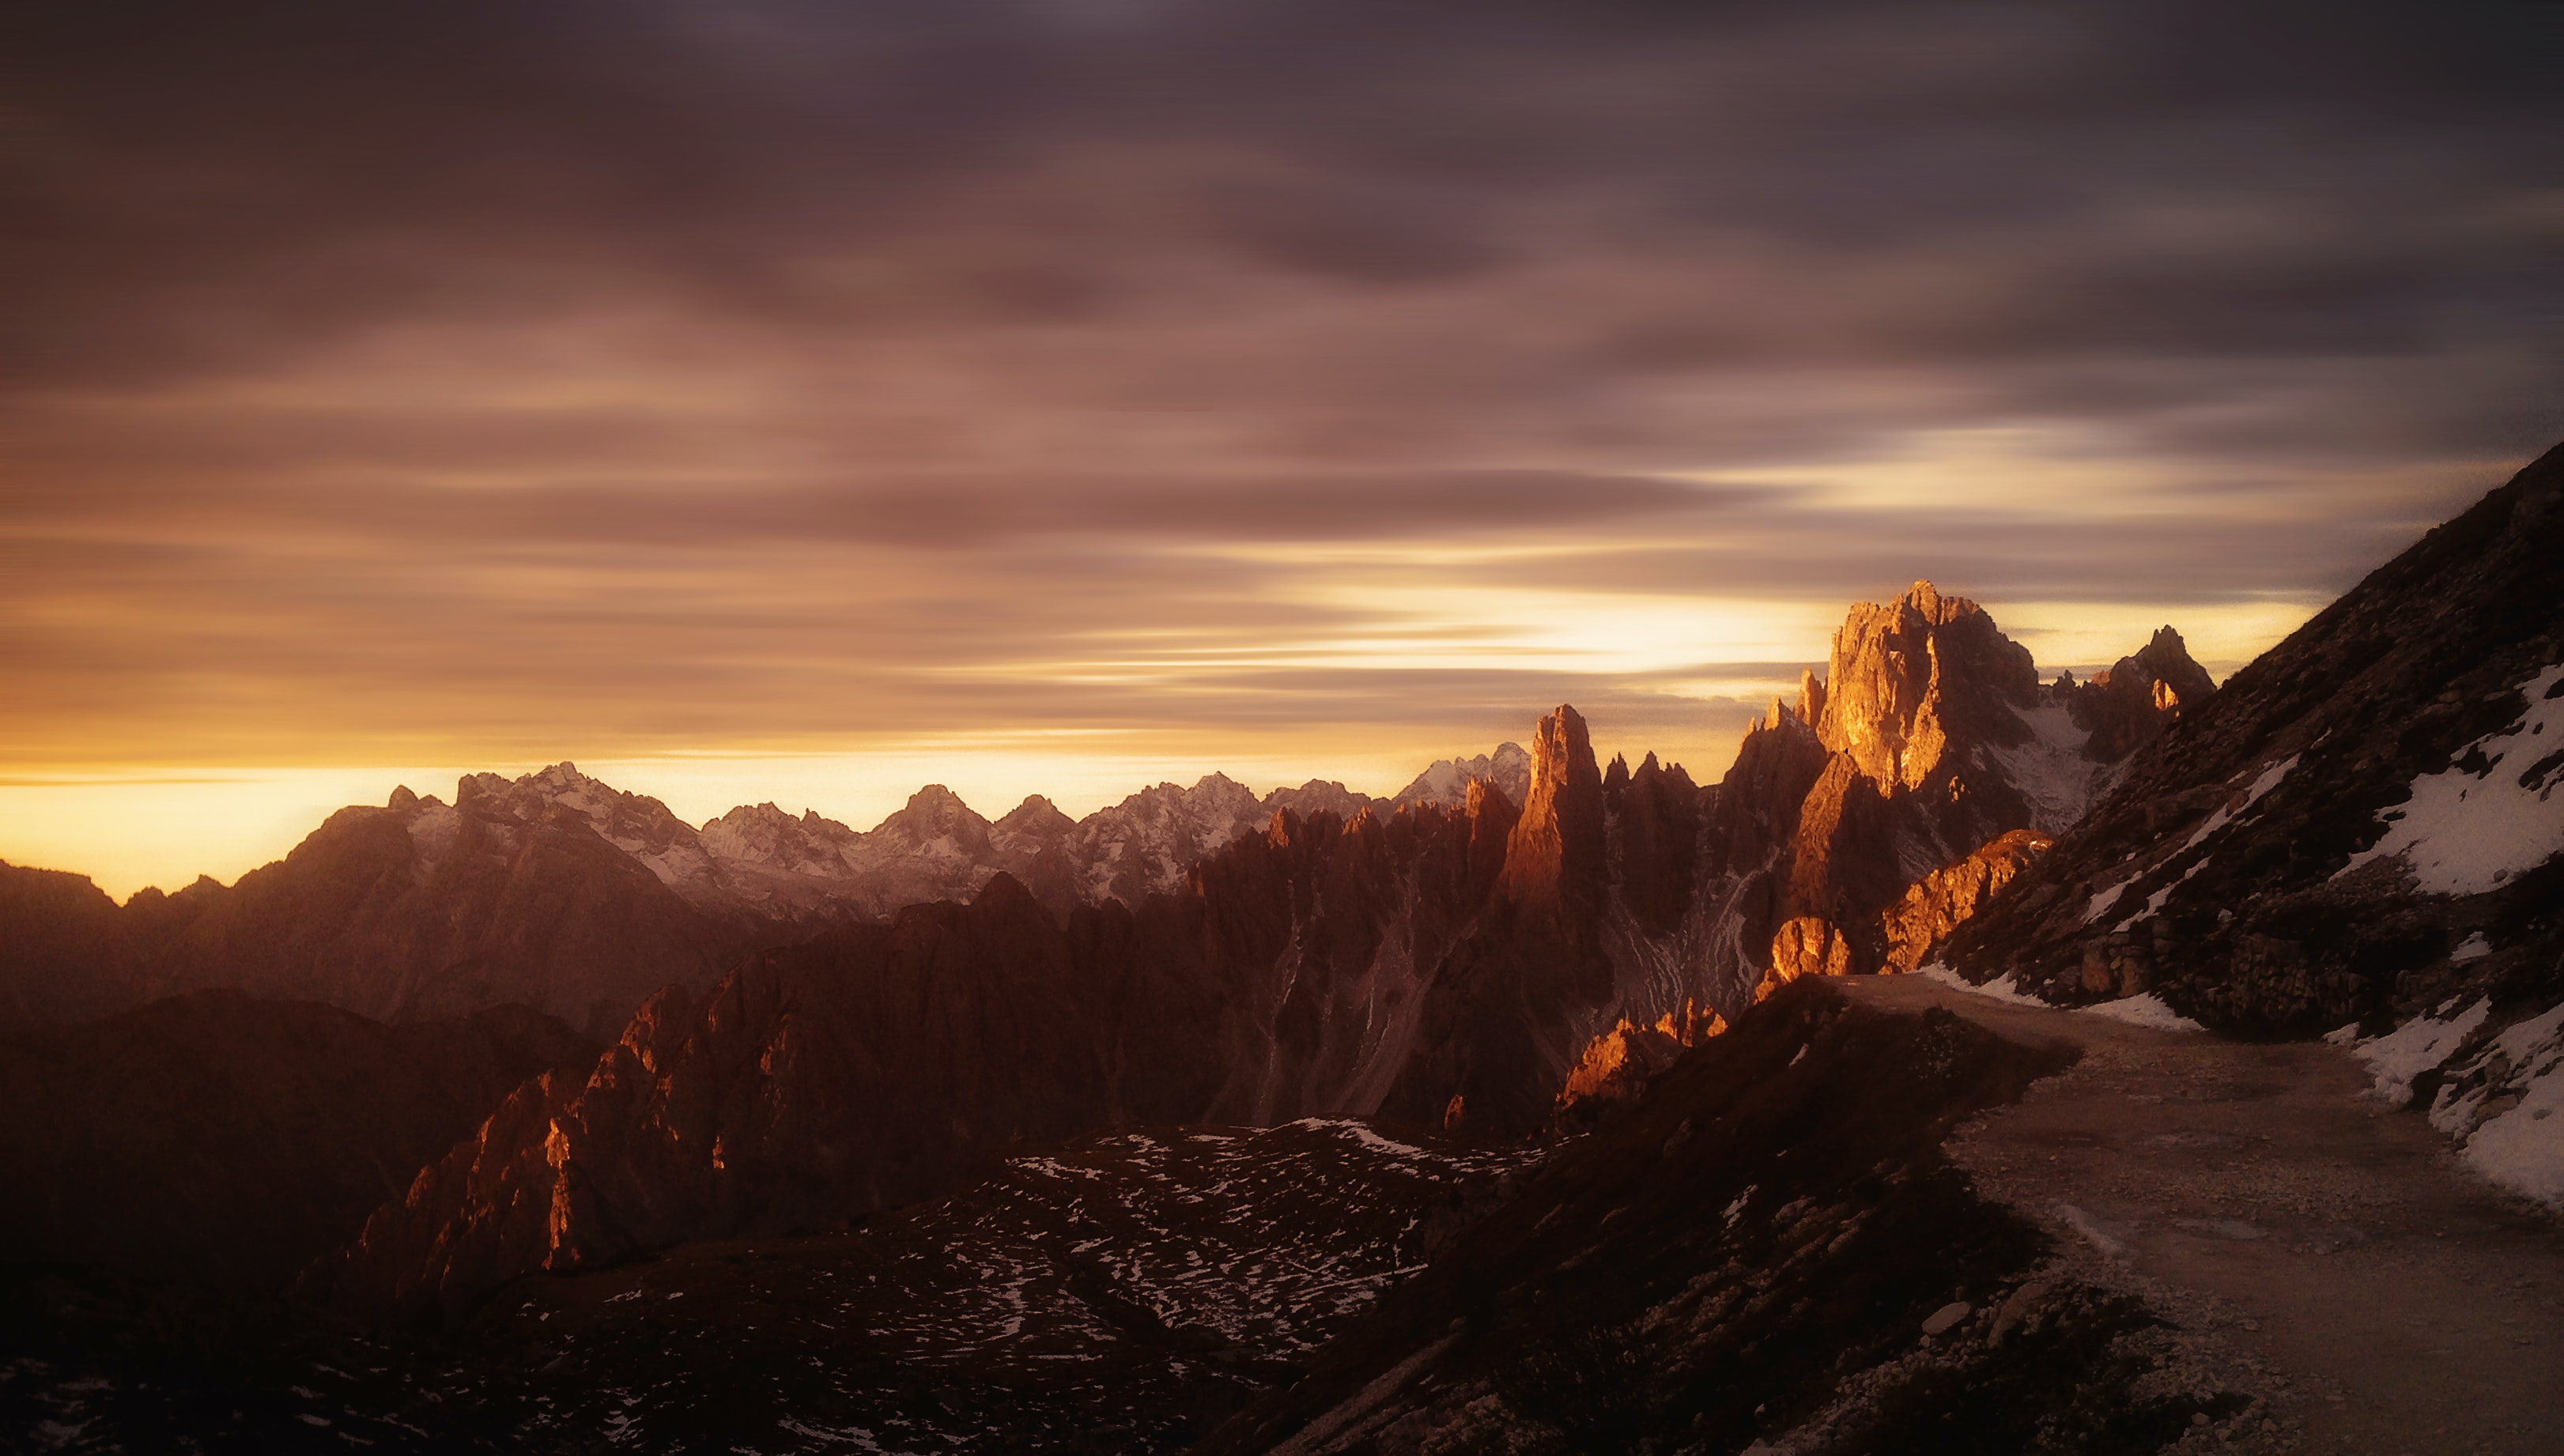 landscape photo of mountain range during golden hour